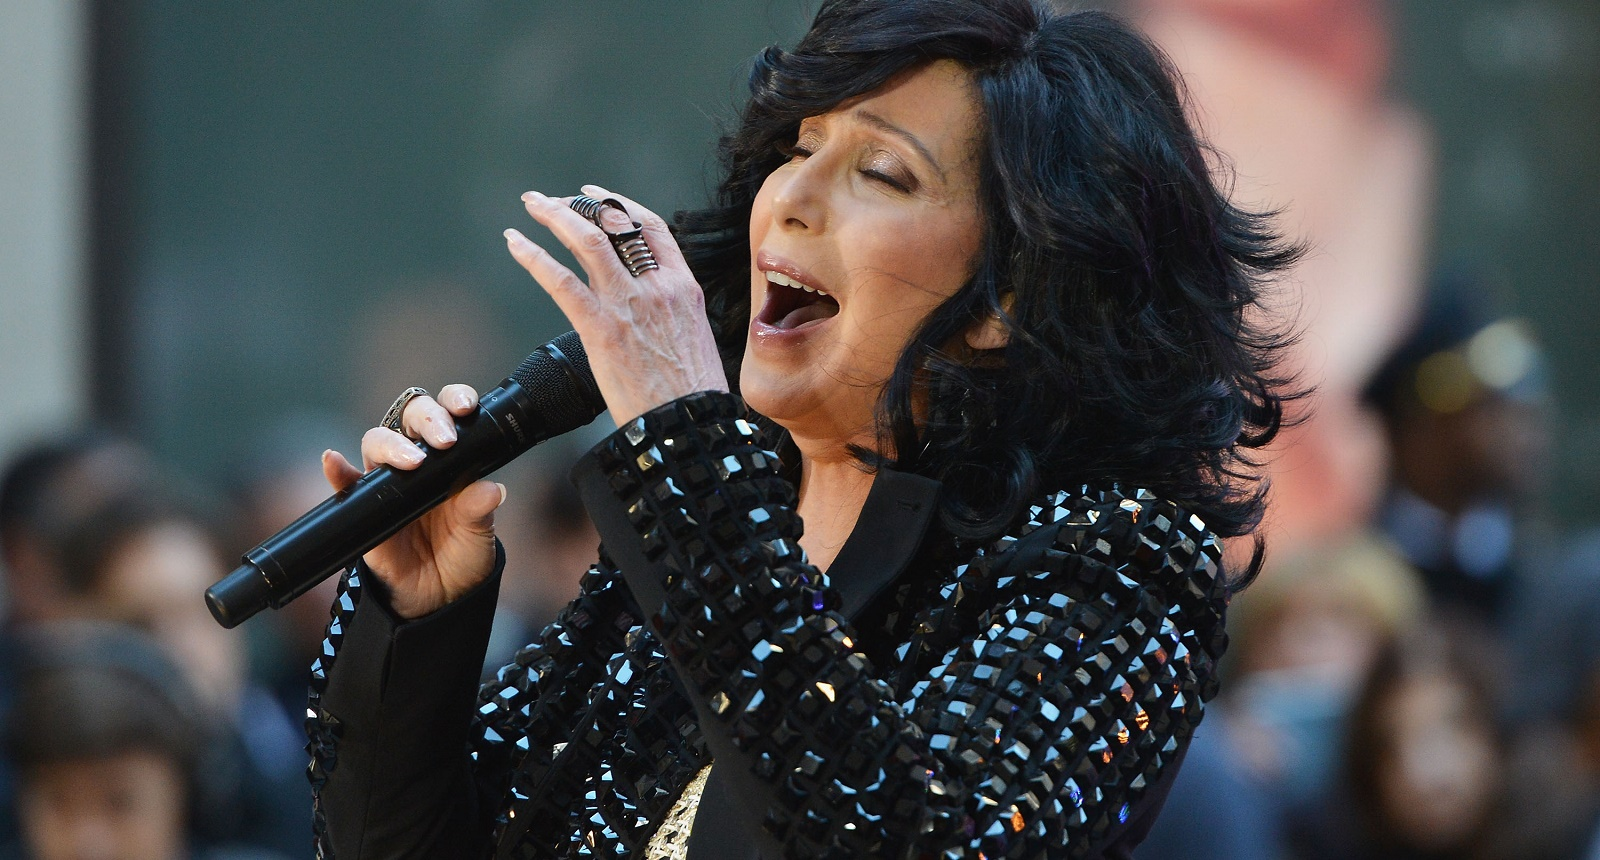 Cher (Photo by Slaven Vlasic/Getty Images)